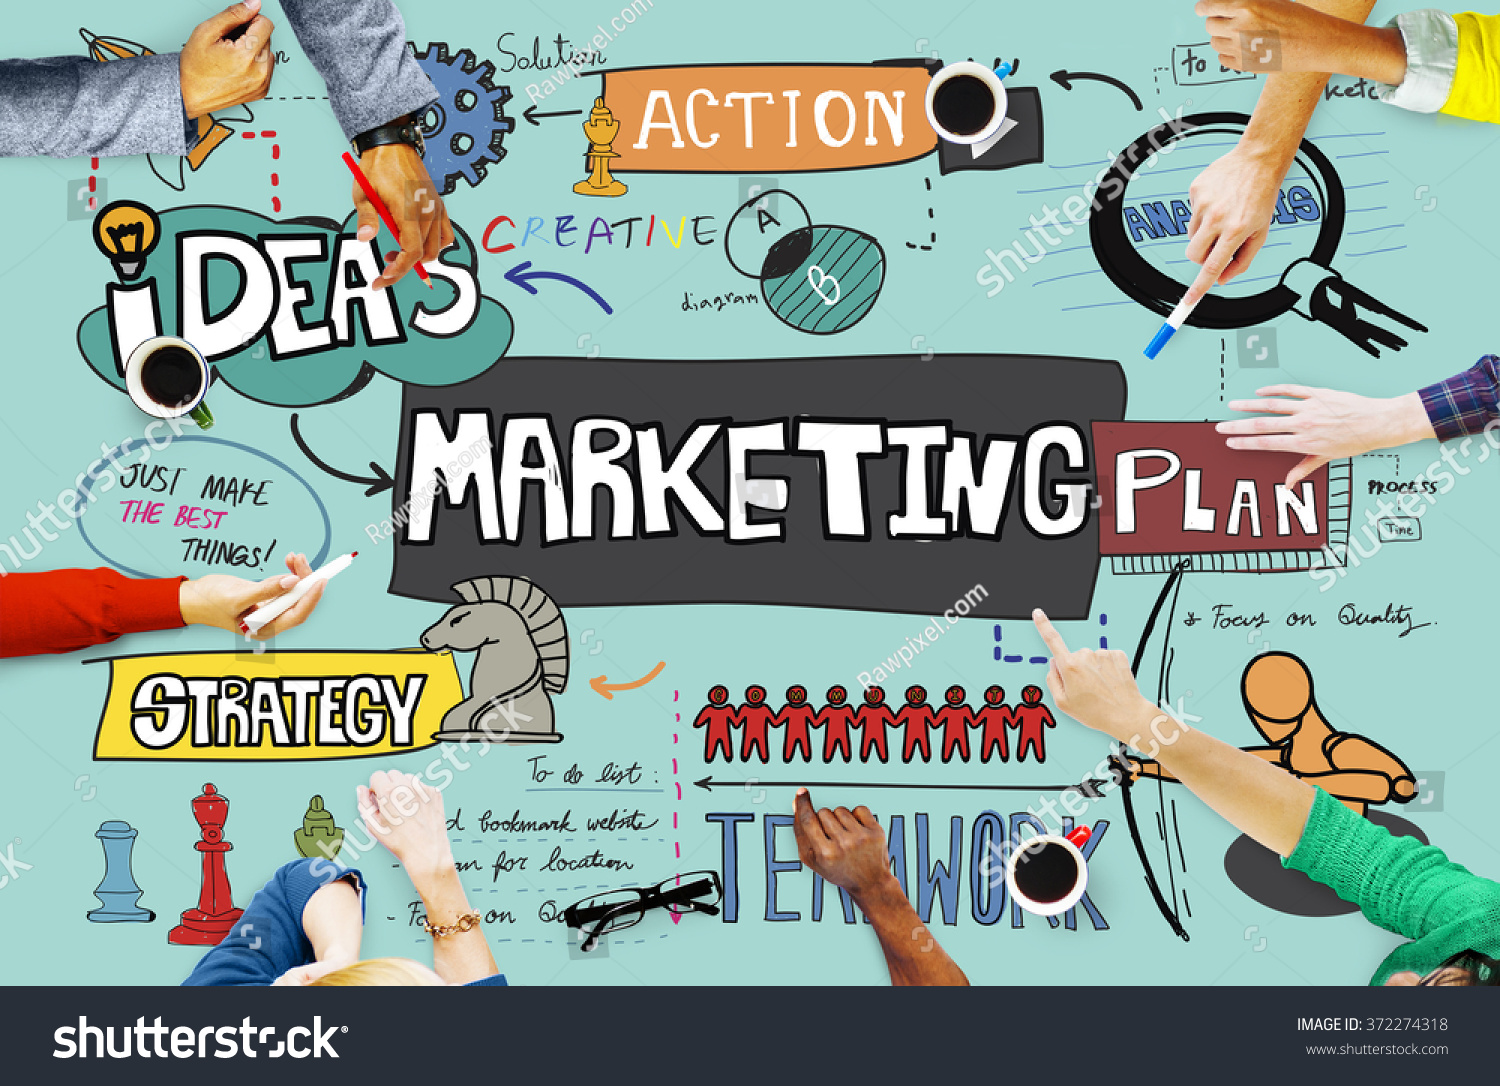 Marketing Commercial Advertising Plan Concept Stock Photo ...